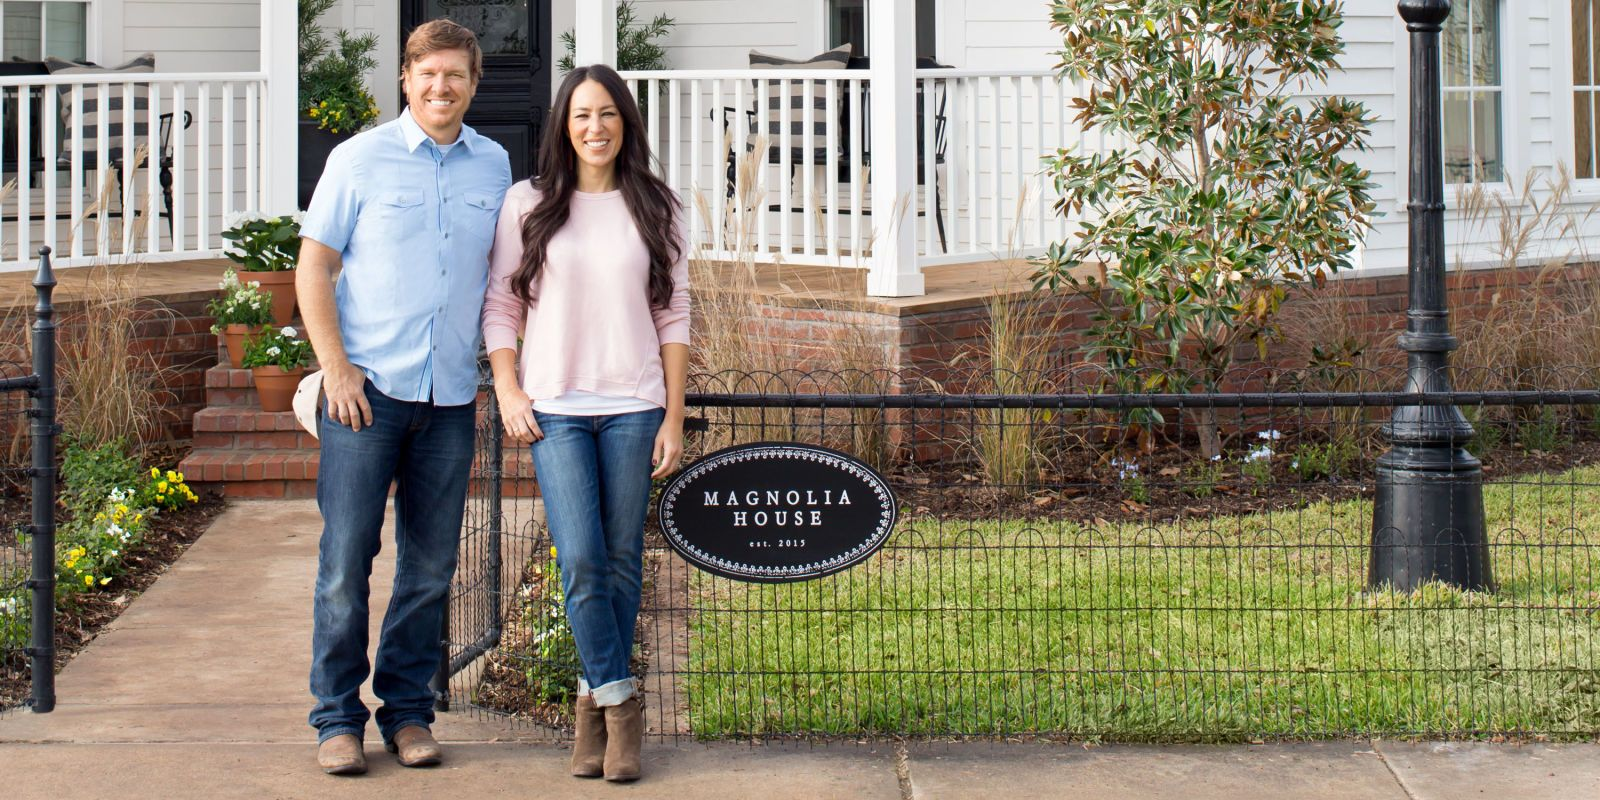 Enter to win a stay at chip joanna 39 s new b b facebook for Chip and joanna gaines bed and breakfast